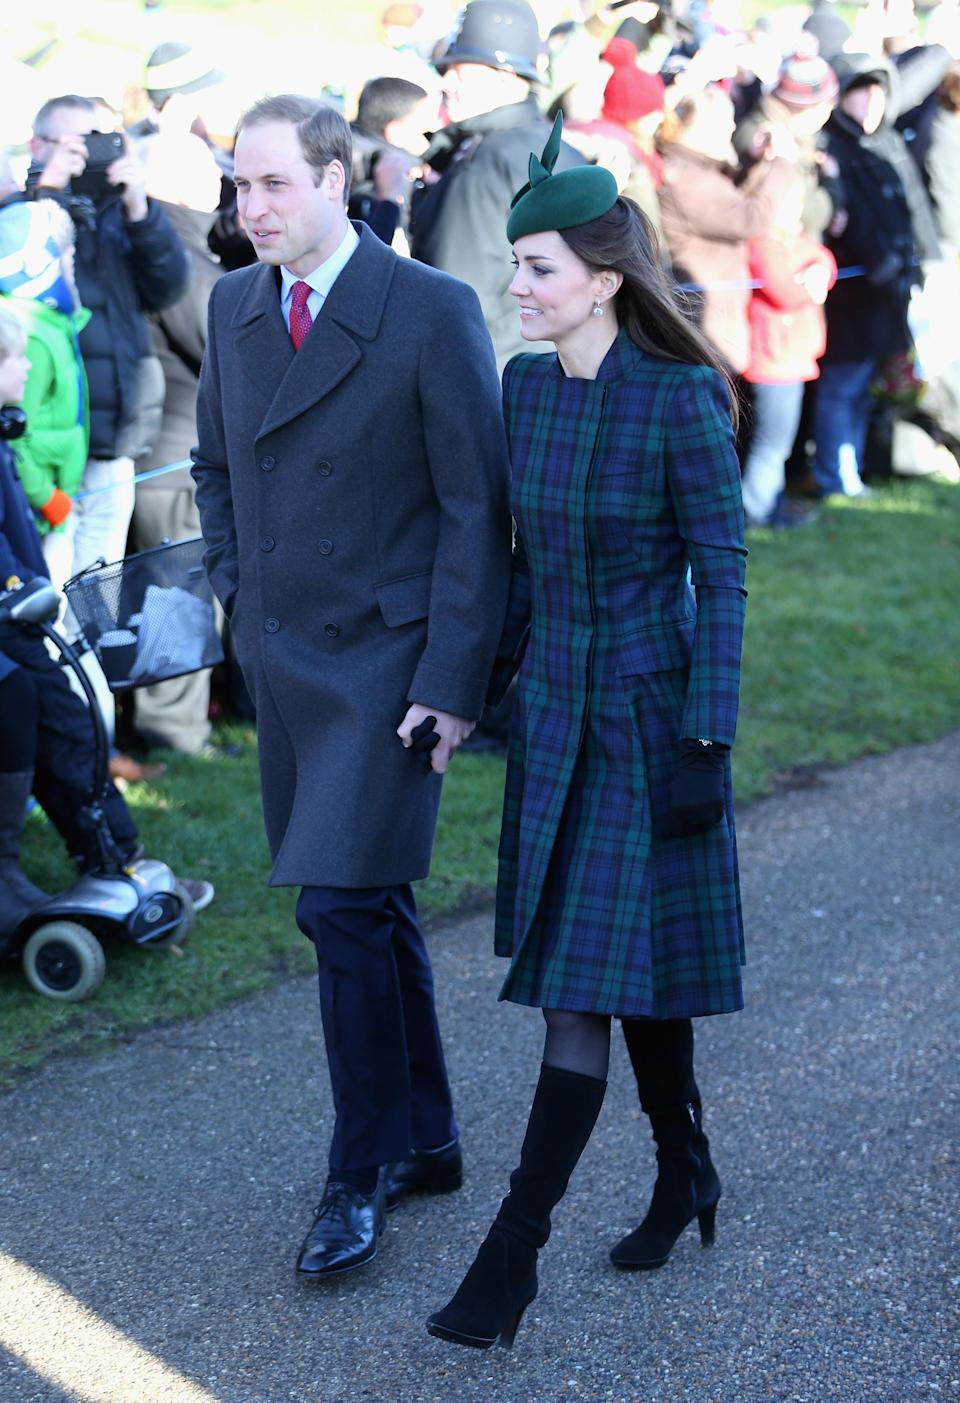 <p>New mum Kate wore a green tartan coat from Alexander McQueen's diffusion line McQ with her Aquatalia 'Rhumba' boots for the later church service in 2013. She accessorised with a green Gina Foster hat. (Getty) </p>